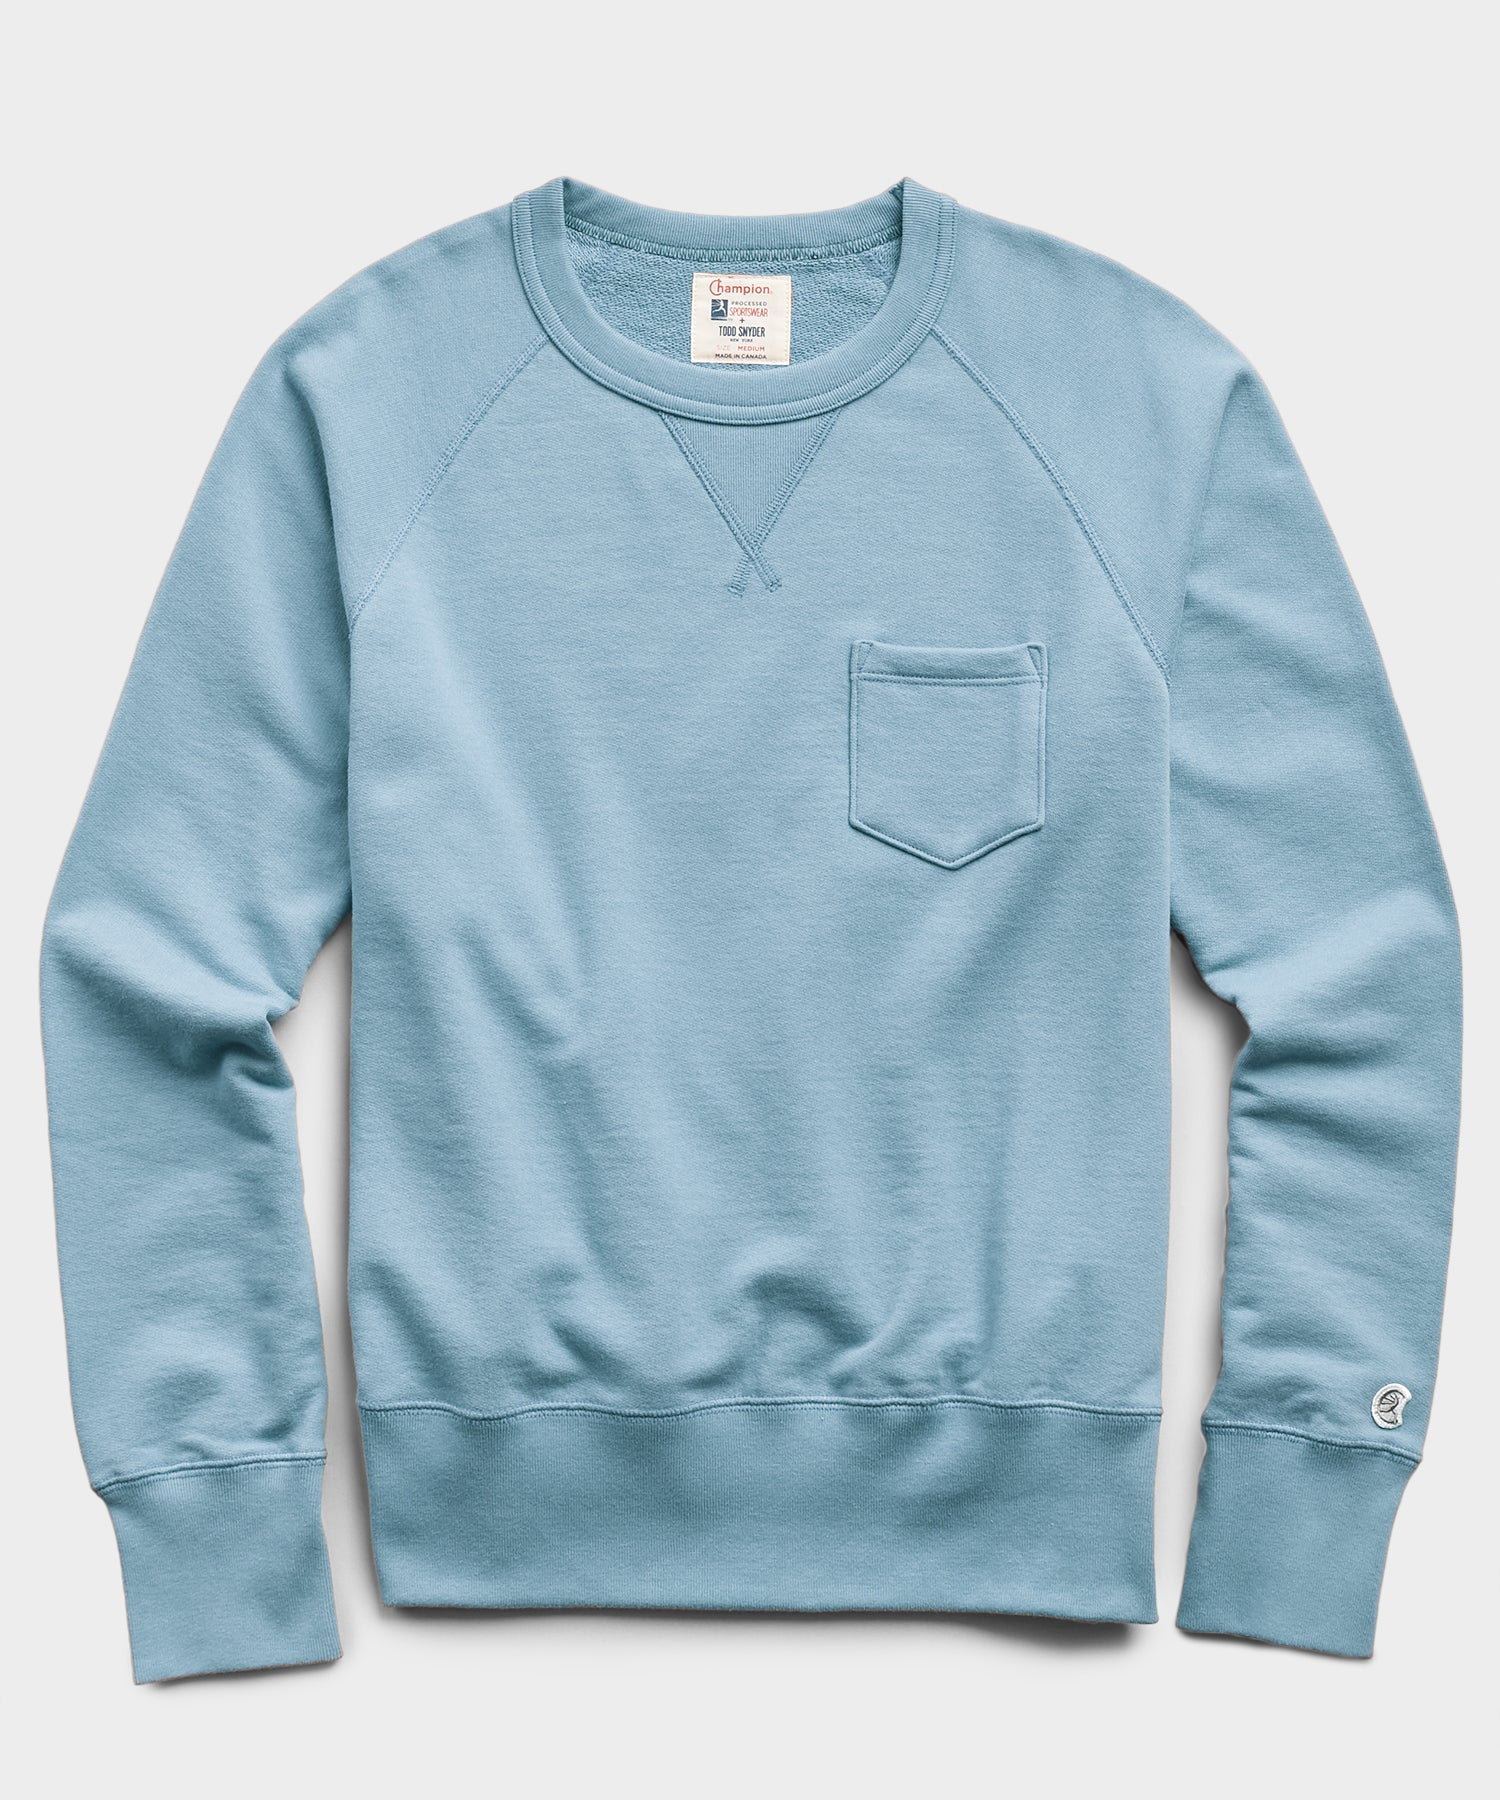 Midweight Pocket Sweatshirt in Blue Mist